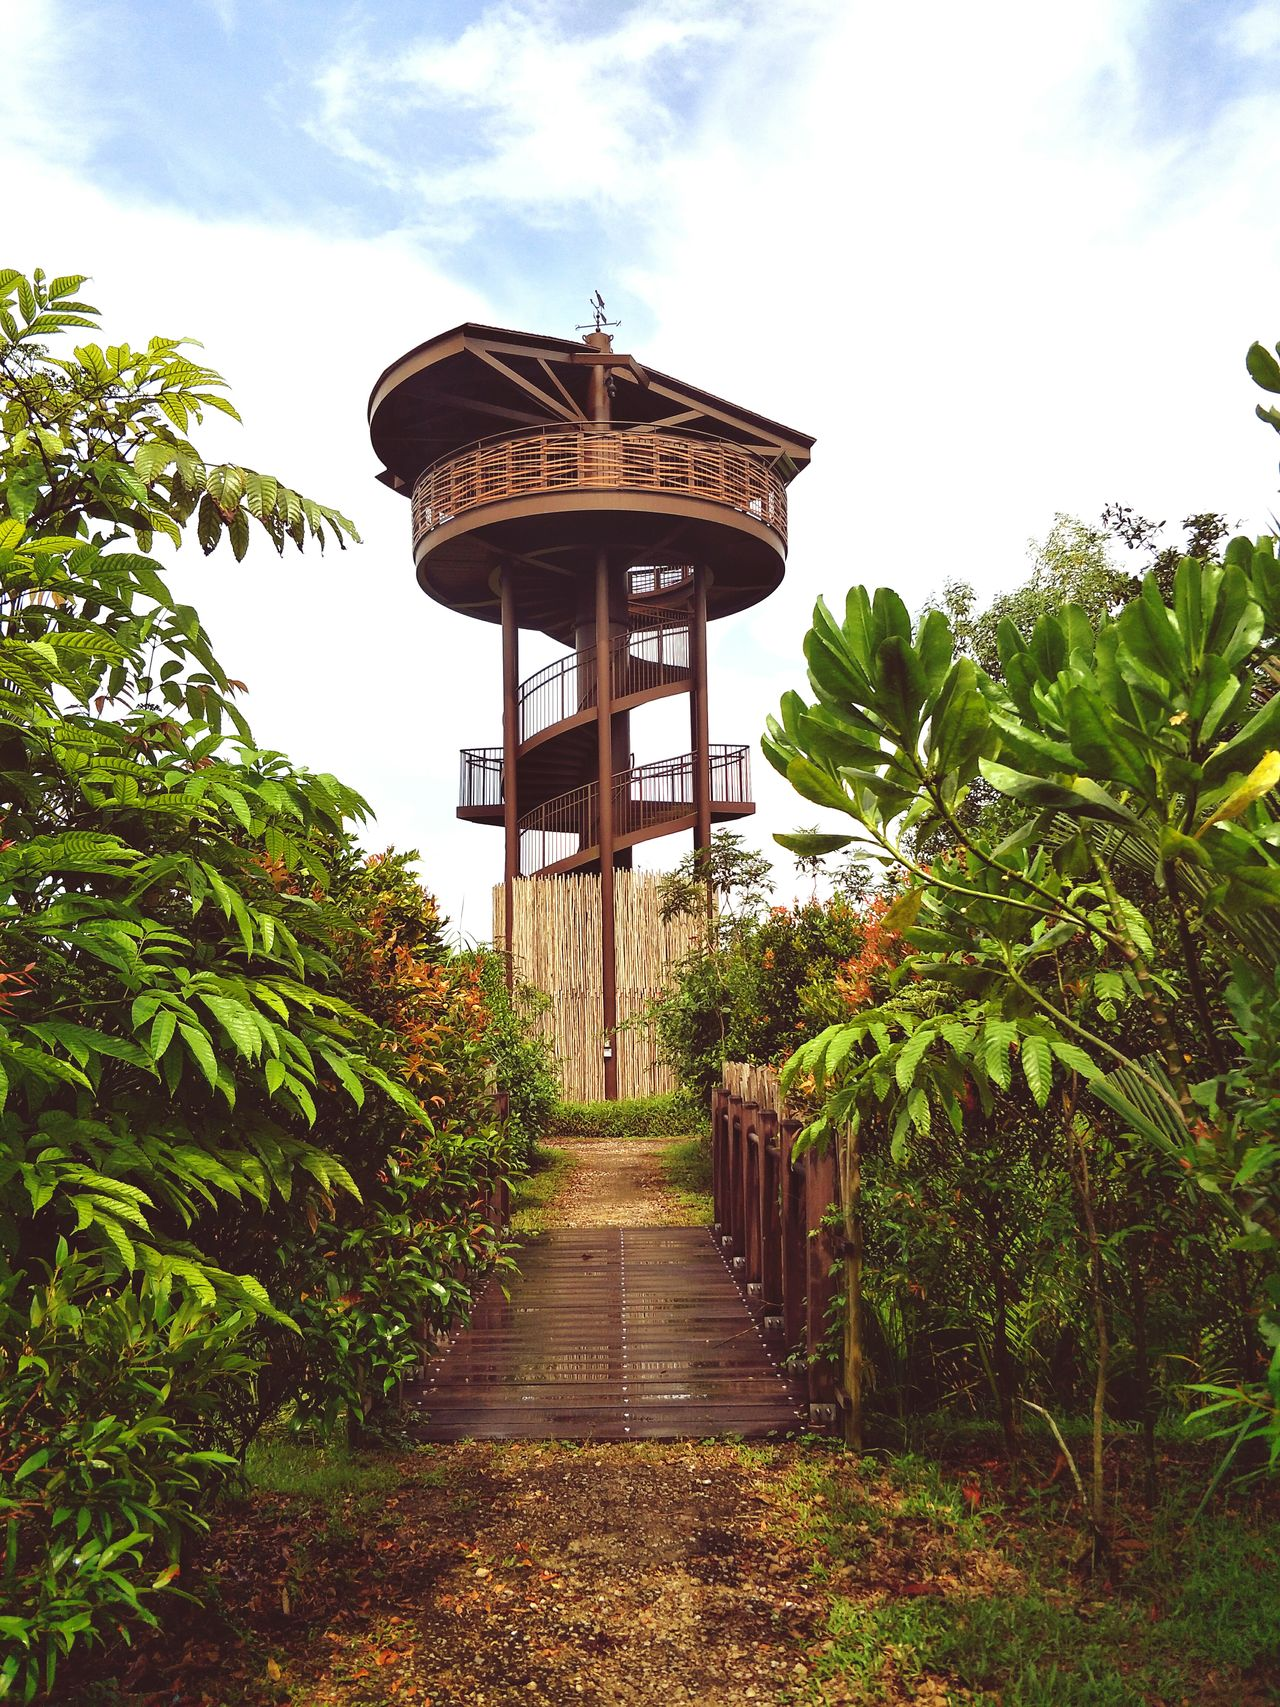 Cloud - Sky Tree Outdoors Architecture Nature Background Tower Viewpoint Kranji Marshes Hiking Bird Watching